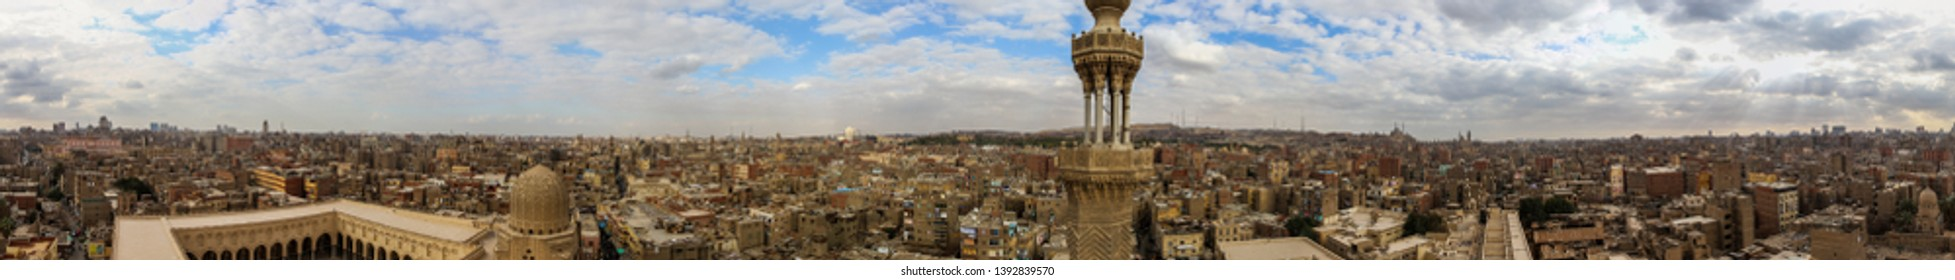 Panorama over old city of Cairo, Egypt